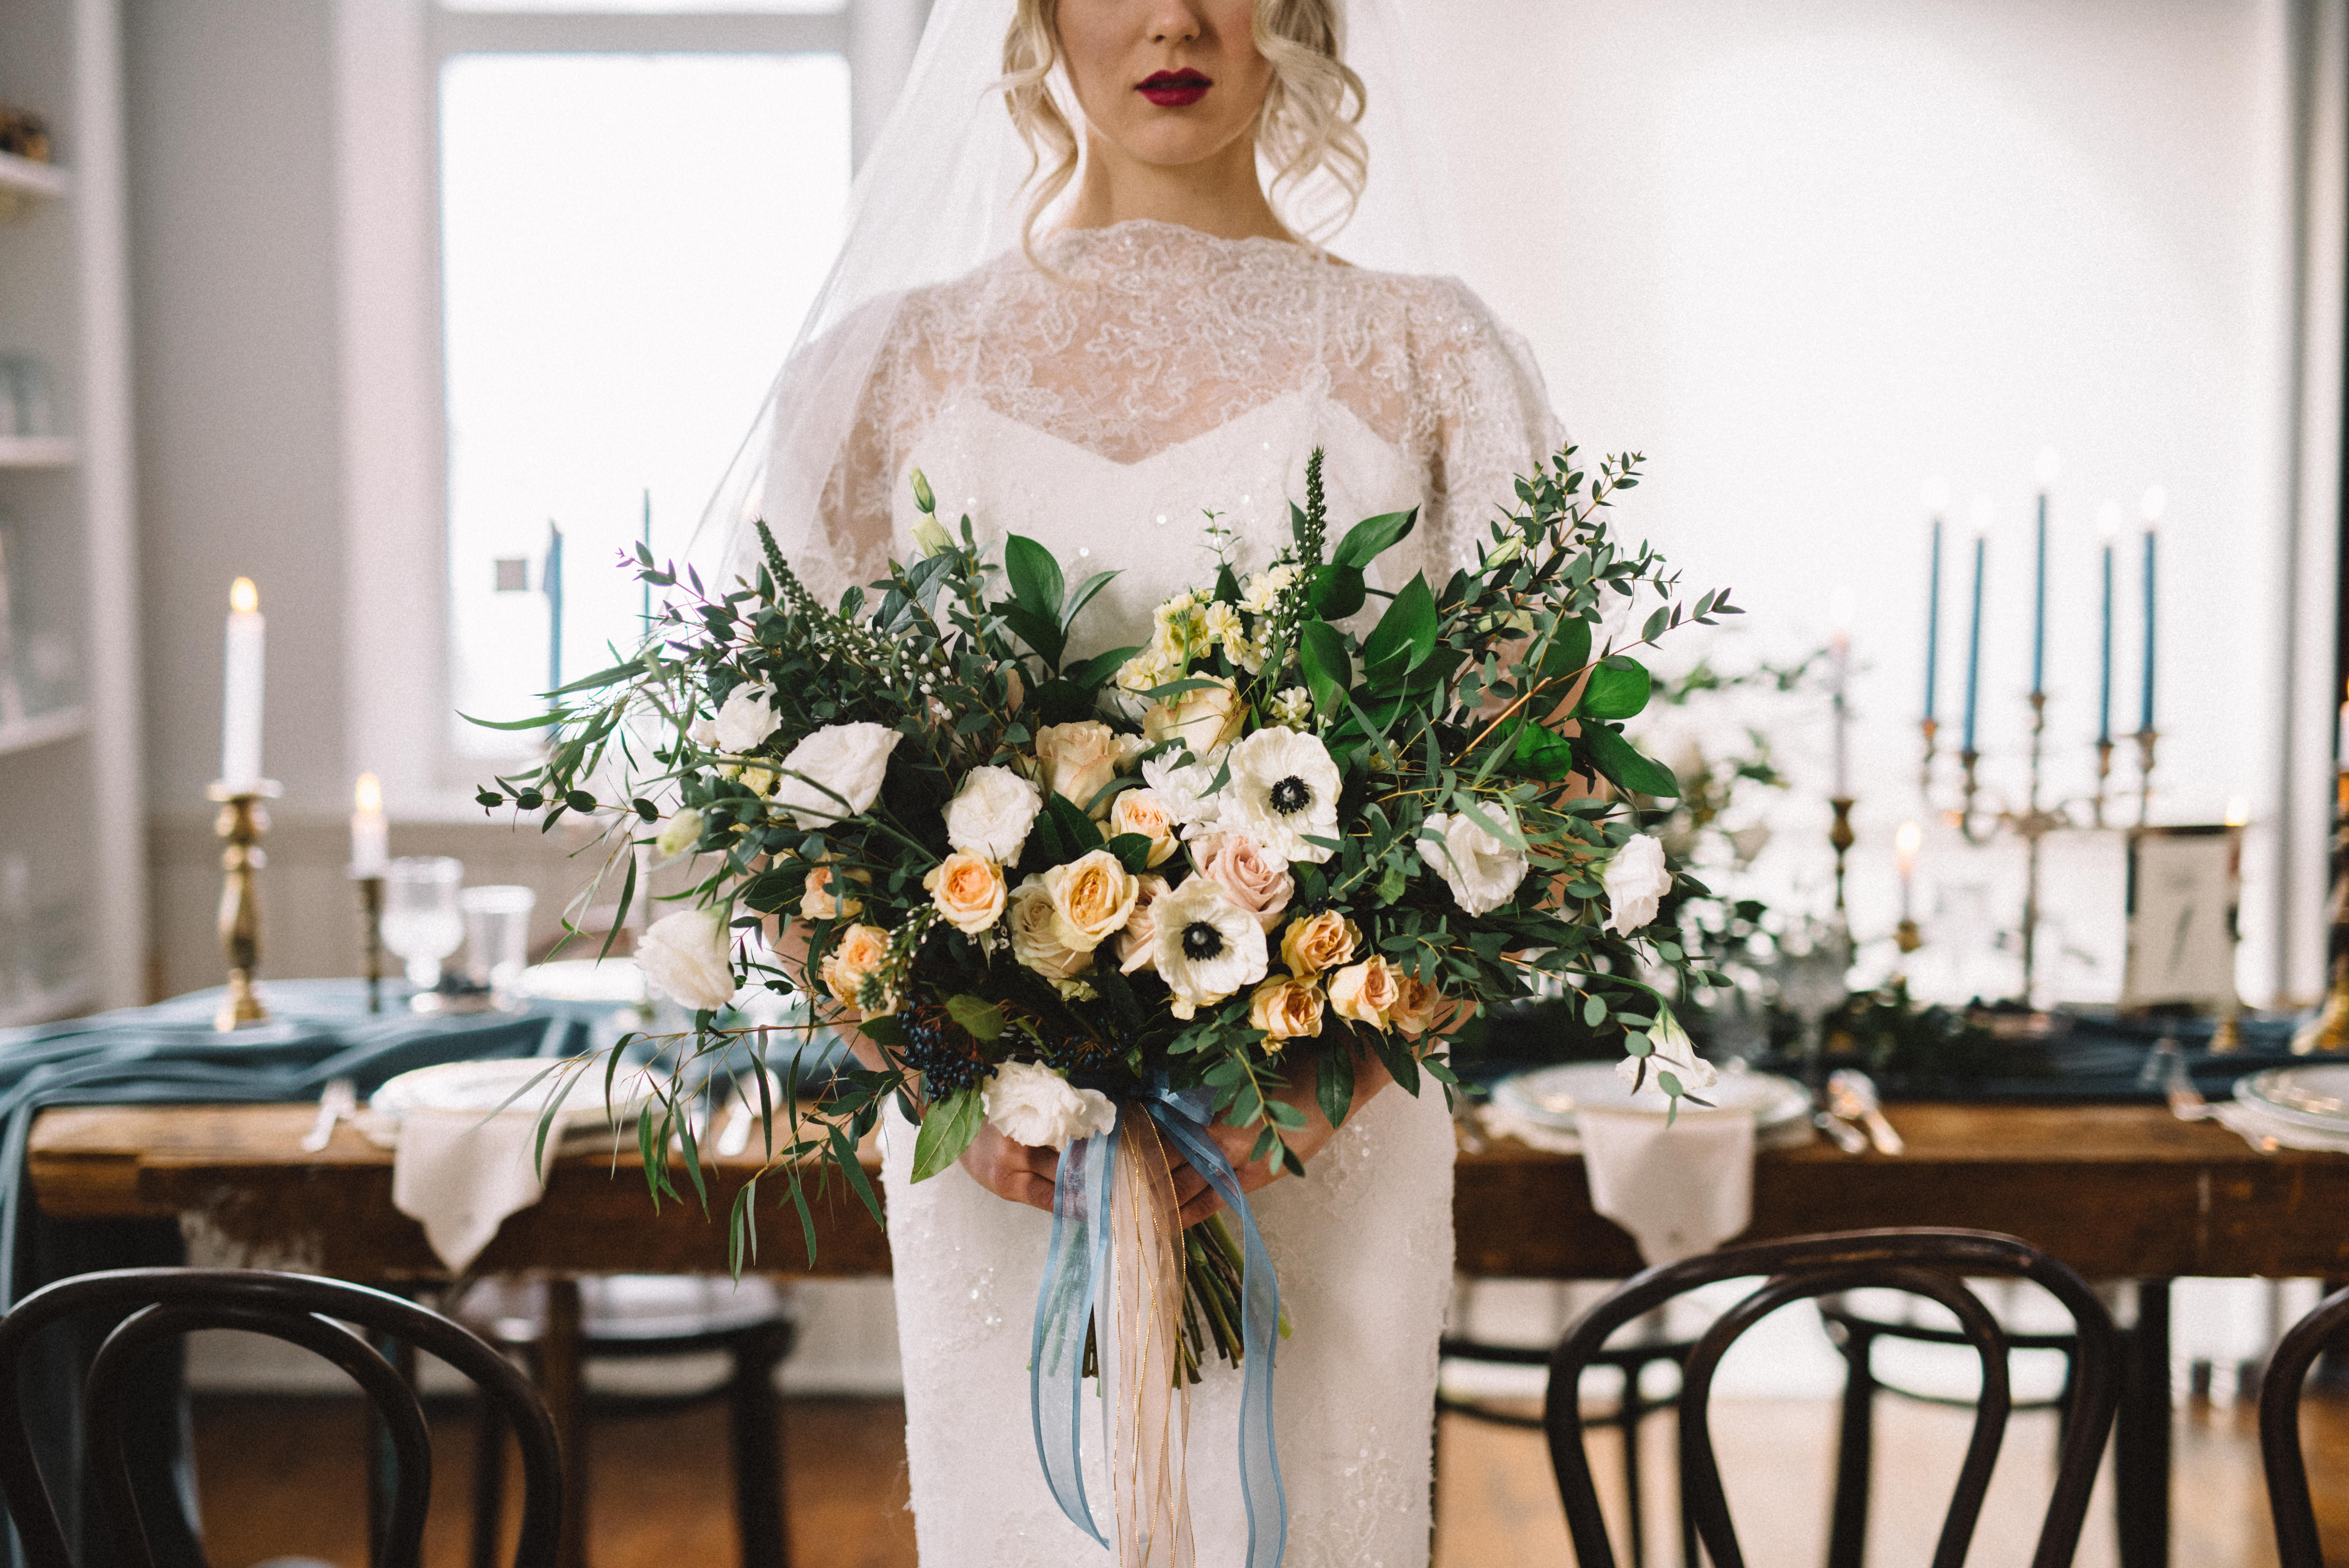 Styled Shoot at Haltman Gallery by Olive Photography